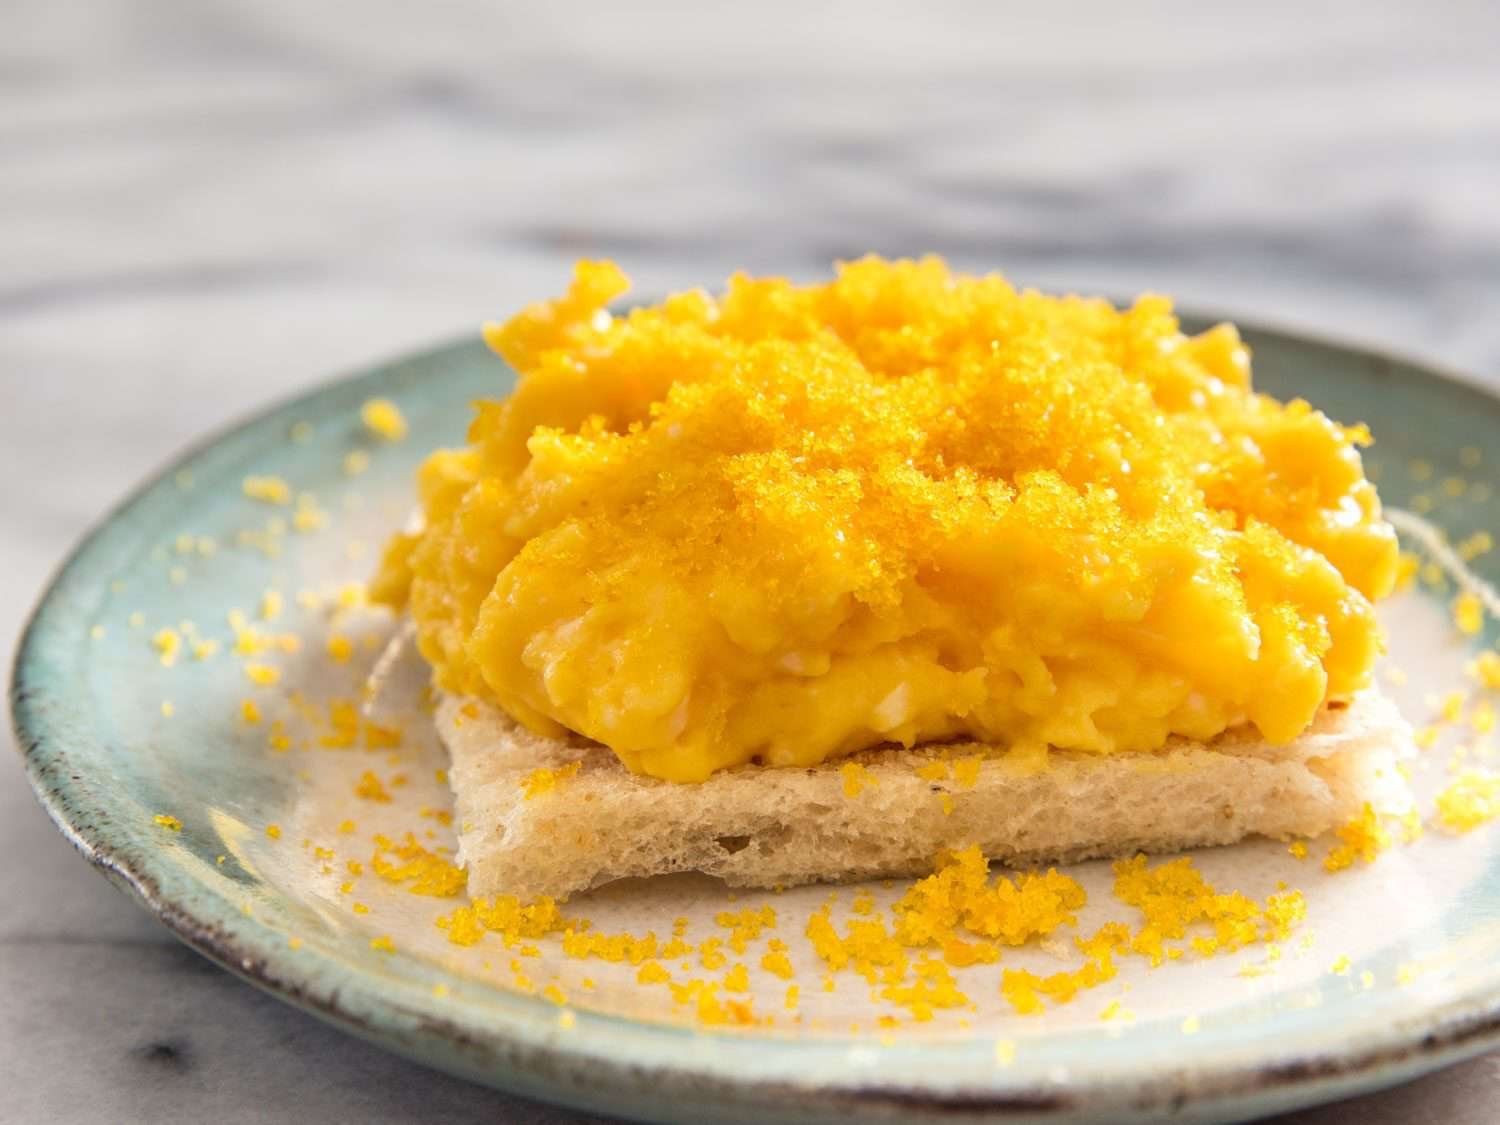 Soft scrambled eggs on toast topped with grated bottarga